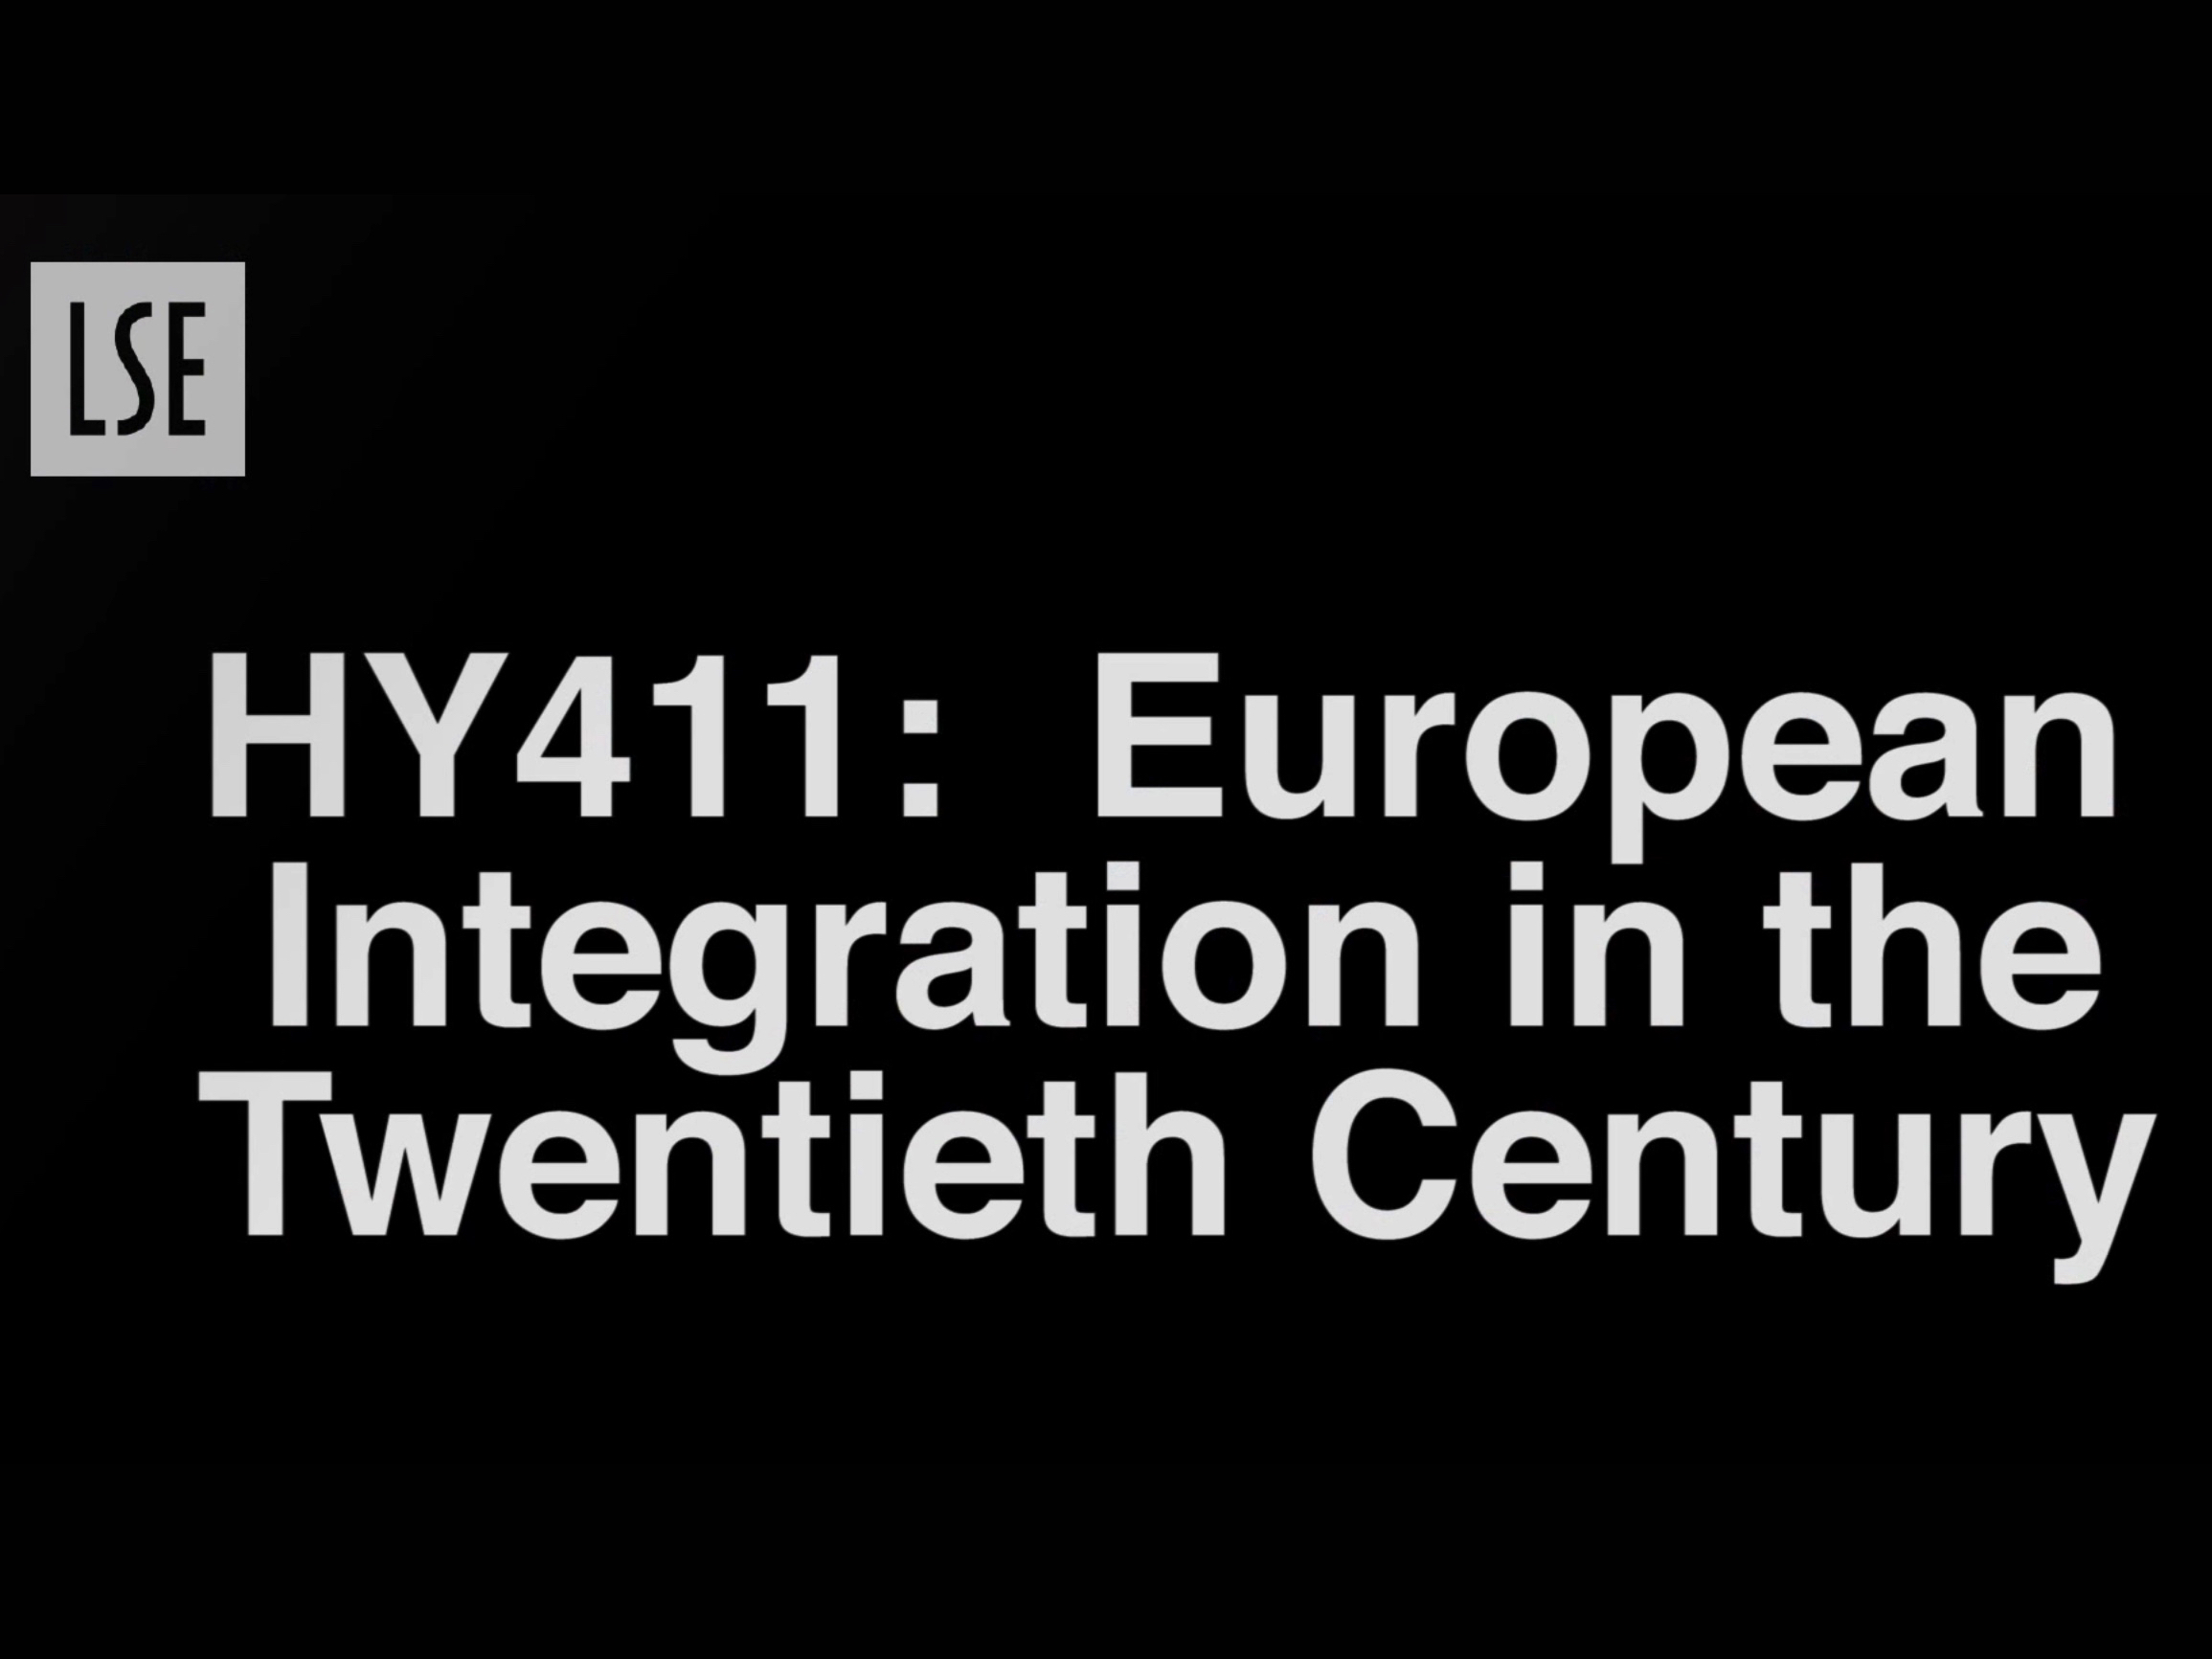 HY411: European Integration in the Twentieth Century